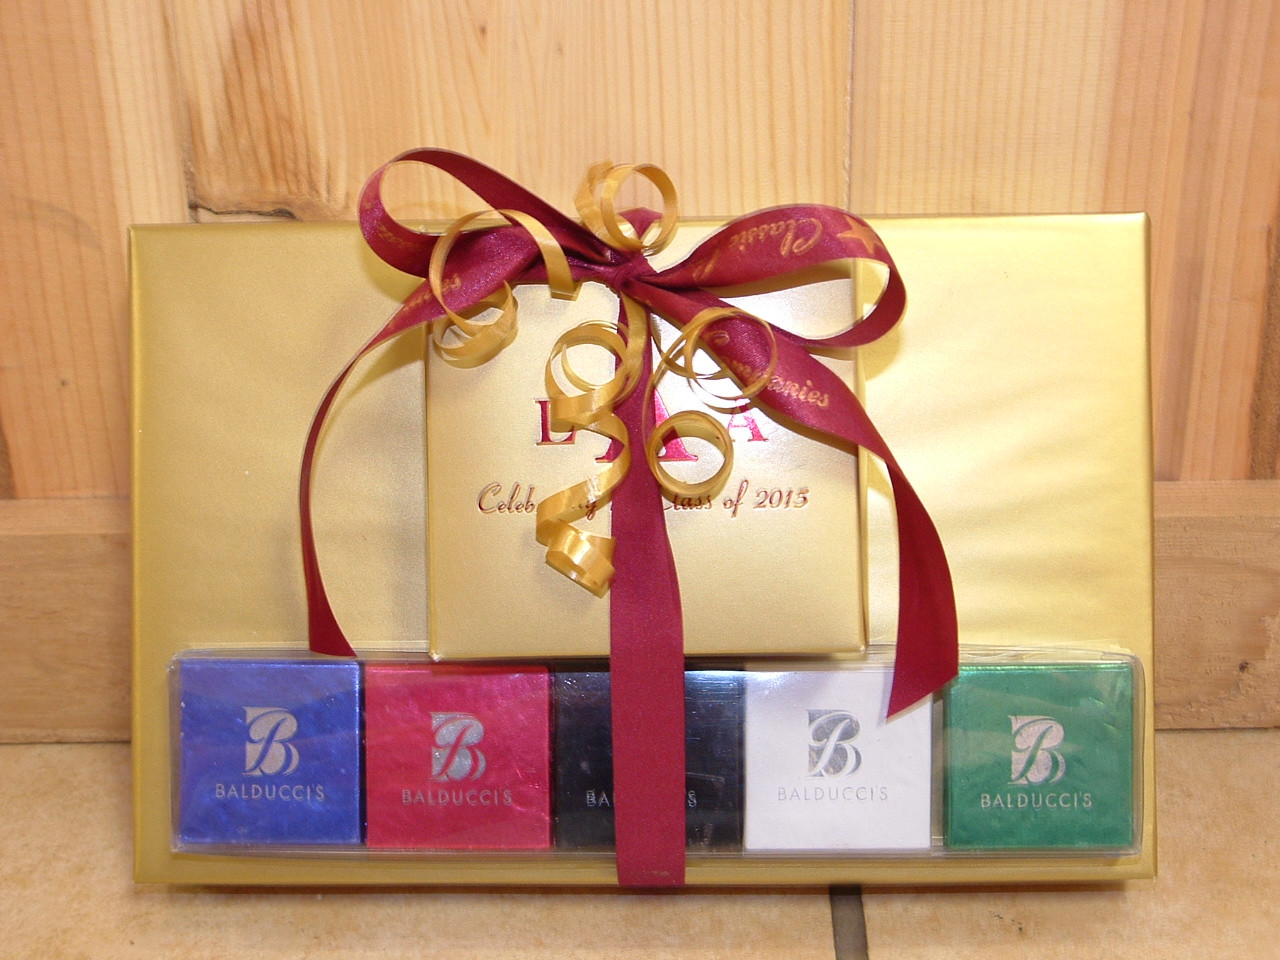 Best ideas about Business Holiday Gift Ideas . Save or Pin Great Corporate Holiday Gift Ideas of Chocolate and or Now.